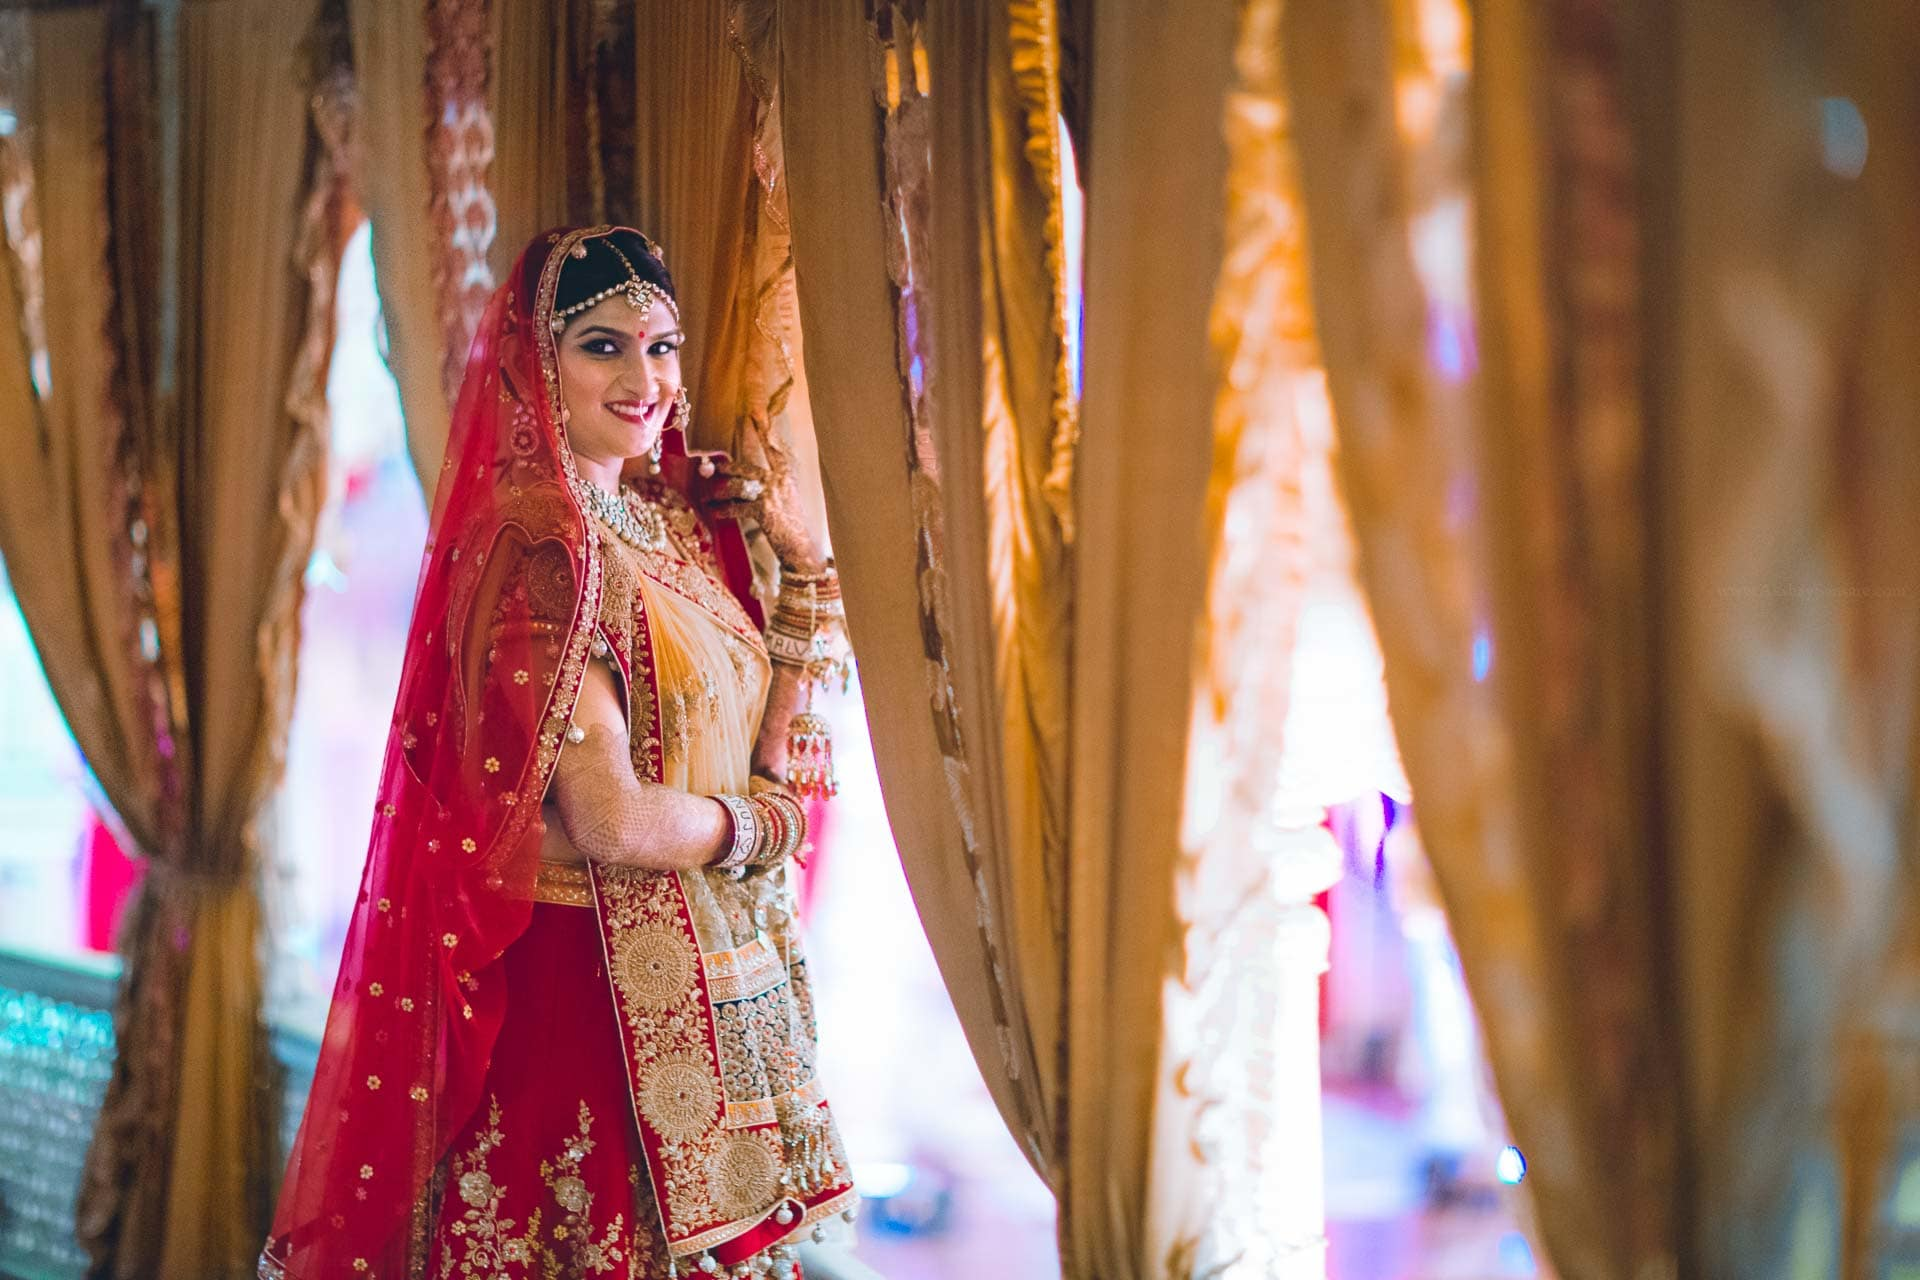 the bride malvika!:akshay sansare photography and films